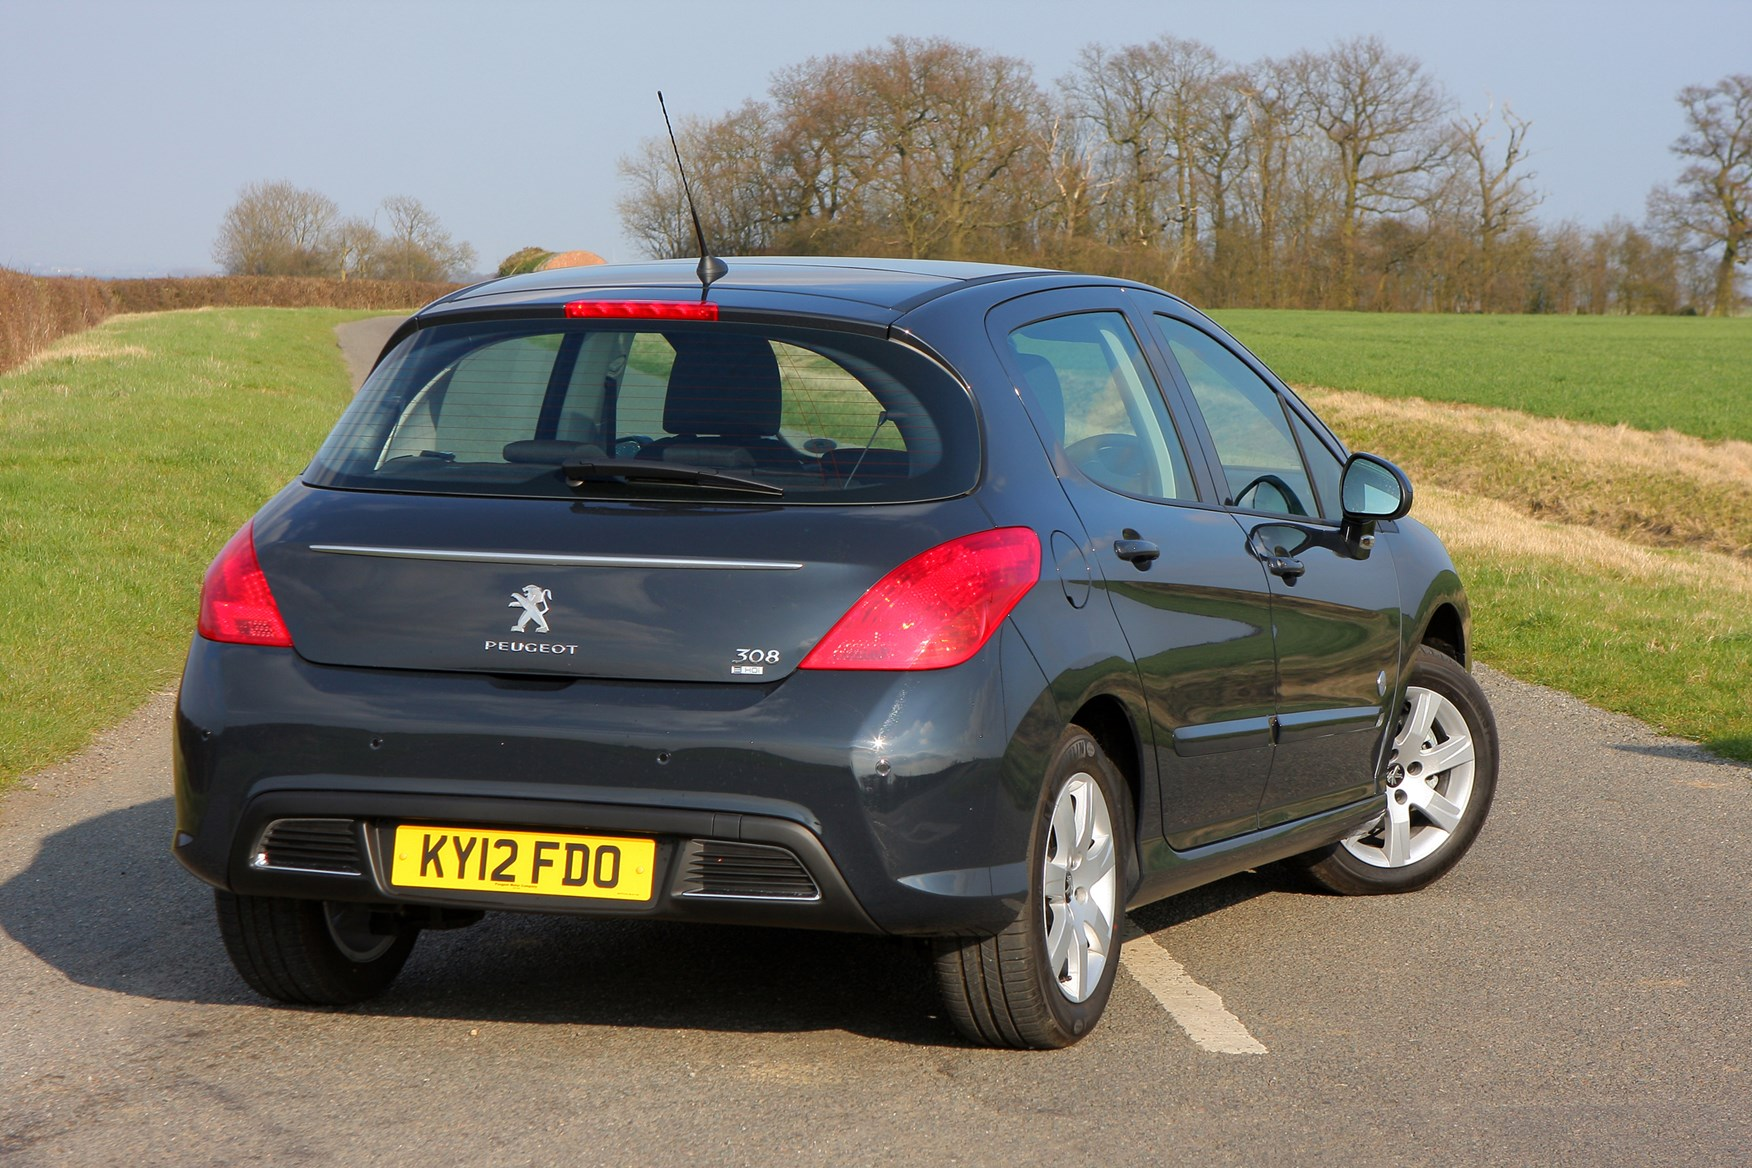 Peugeot 308 Hatchback (2007 - 2013) Photos